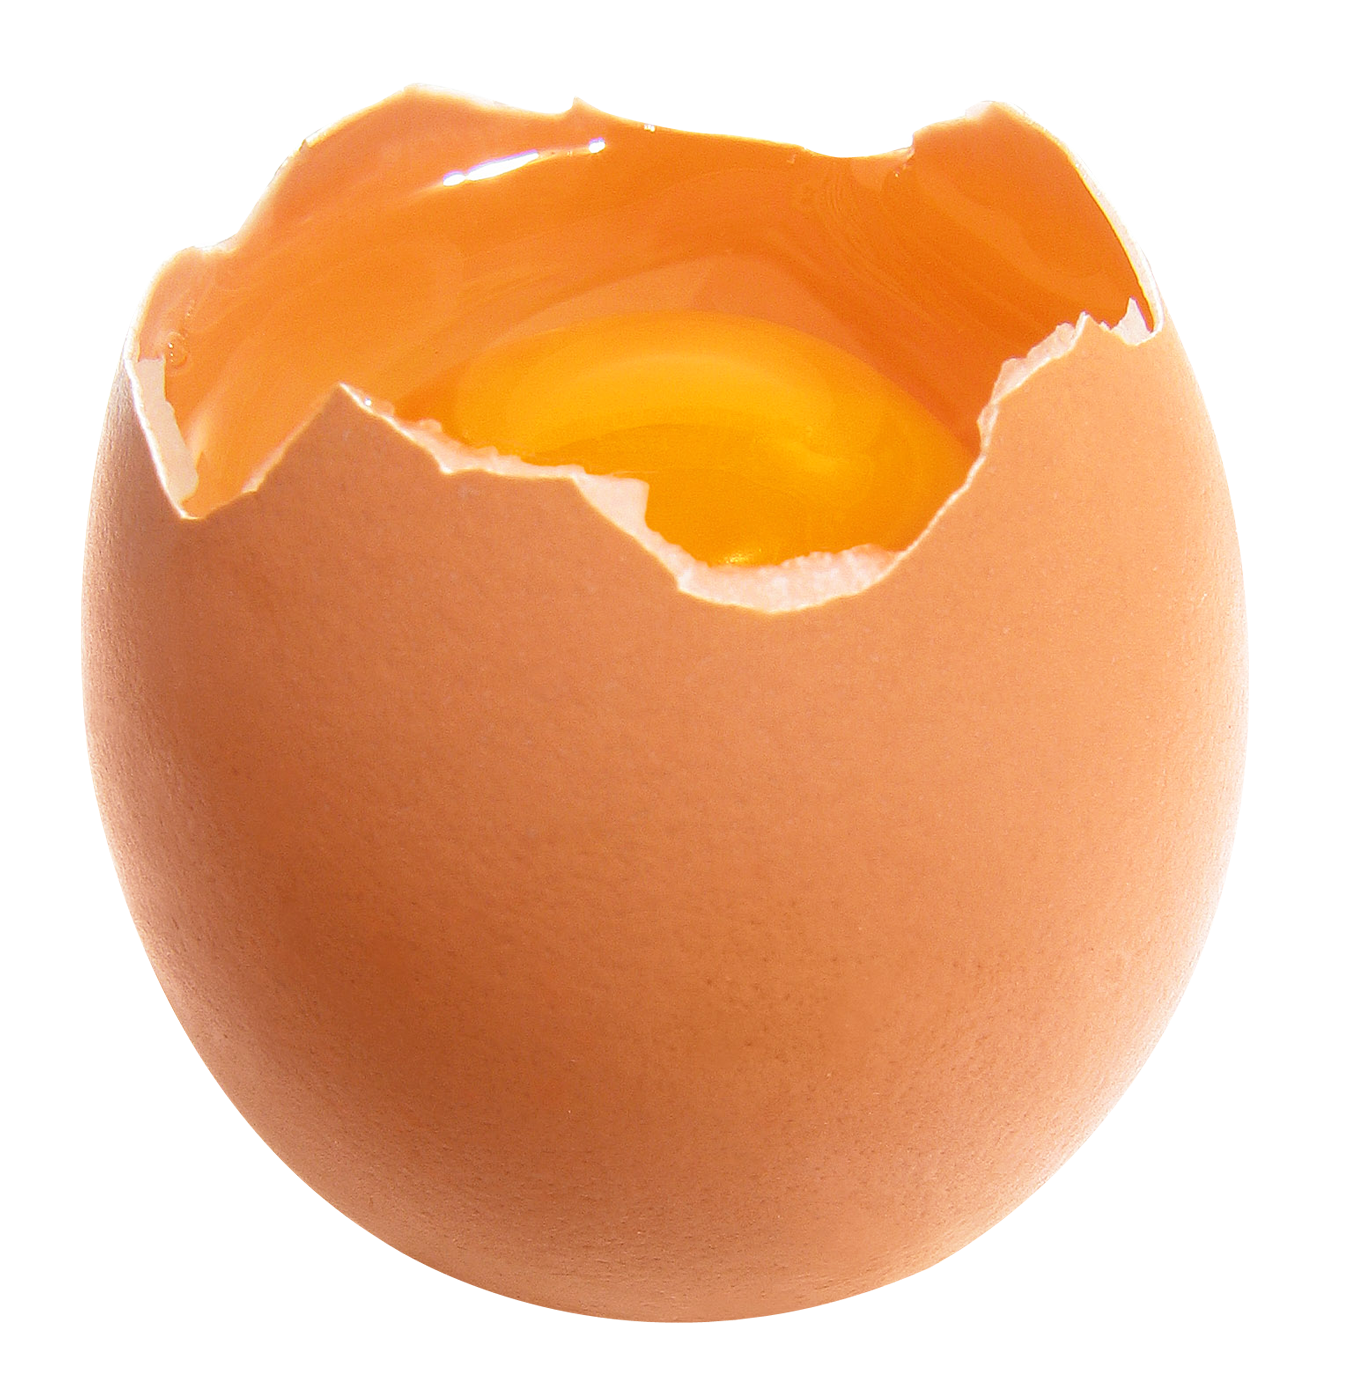 Cracked Egg PNG HD - 135655